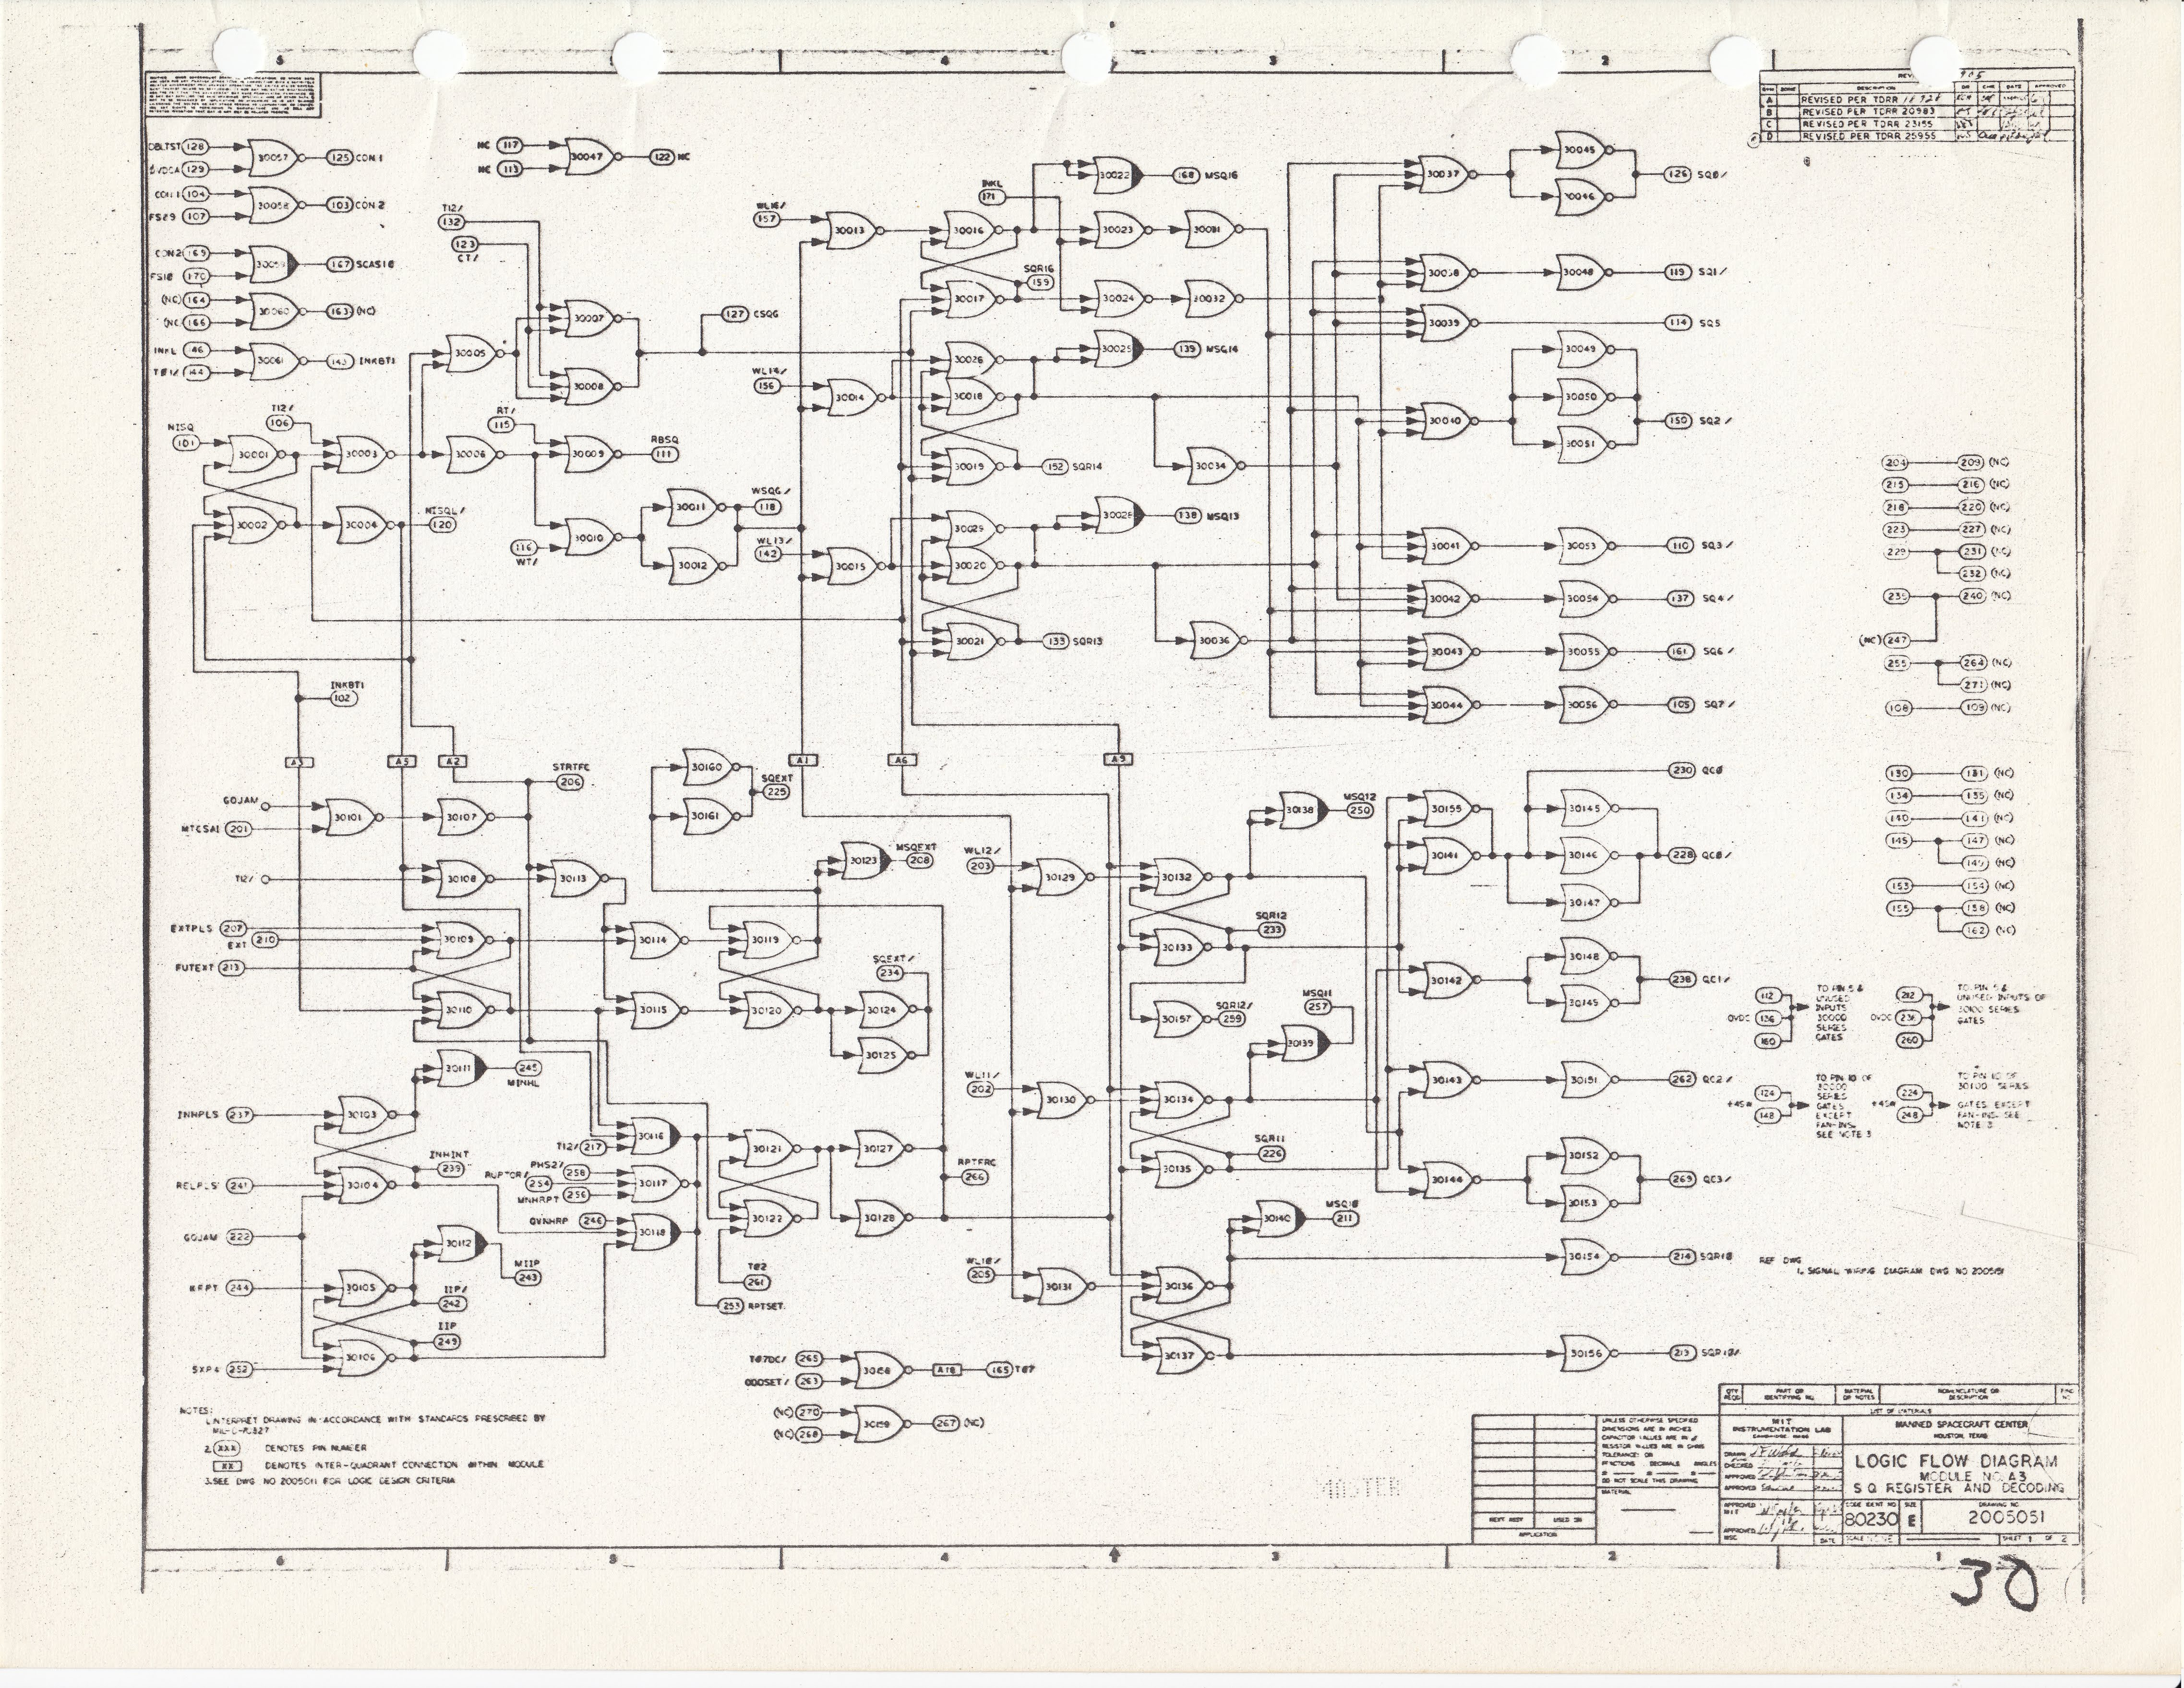 Virtual Agc Electrical Mechanical Page Figure 1 First Rf Amplifier Module A3 Schematic Diagram 2005151b 2 3 4